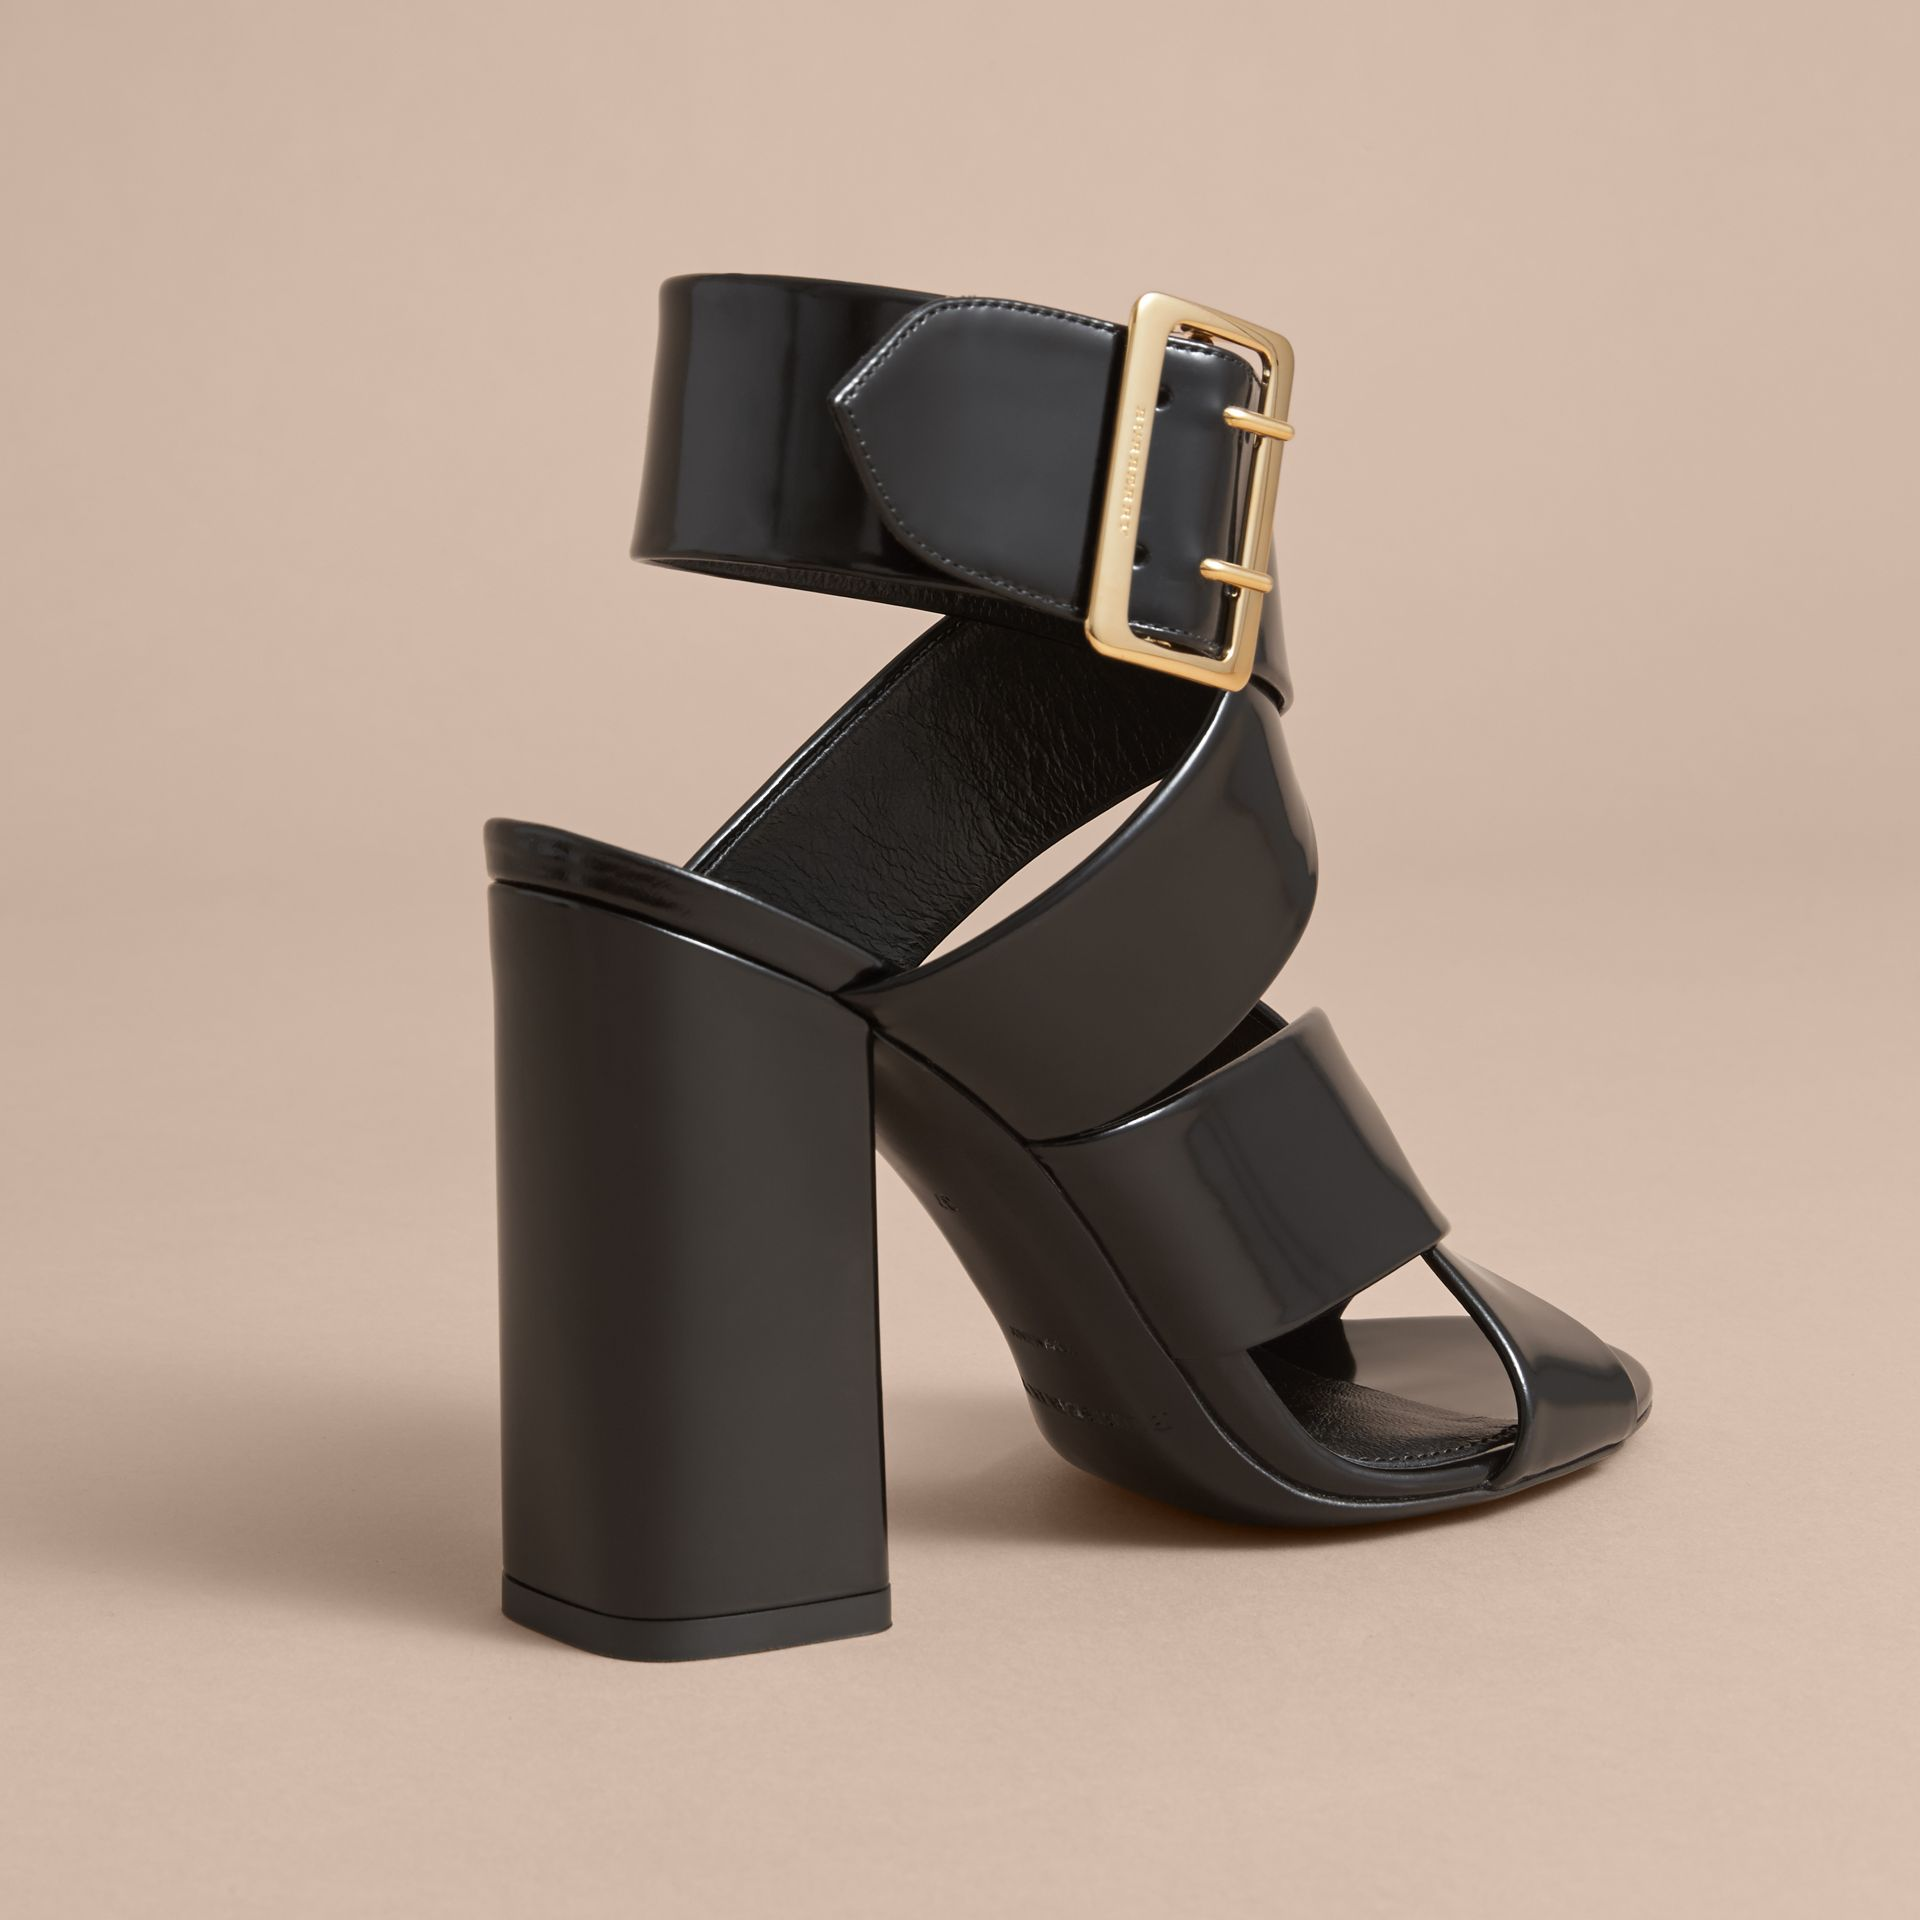 Buckle Detail Patent Leather Sandals - Women | Burberry - gallery image 4